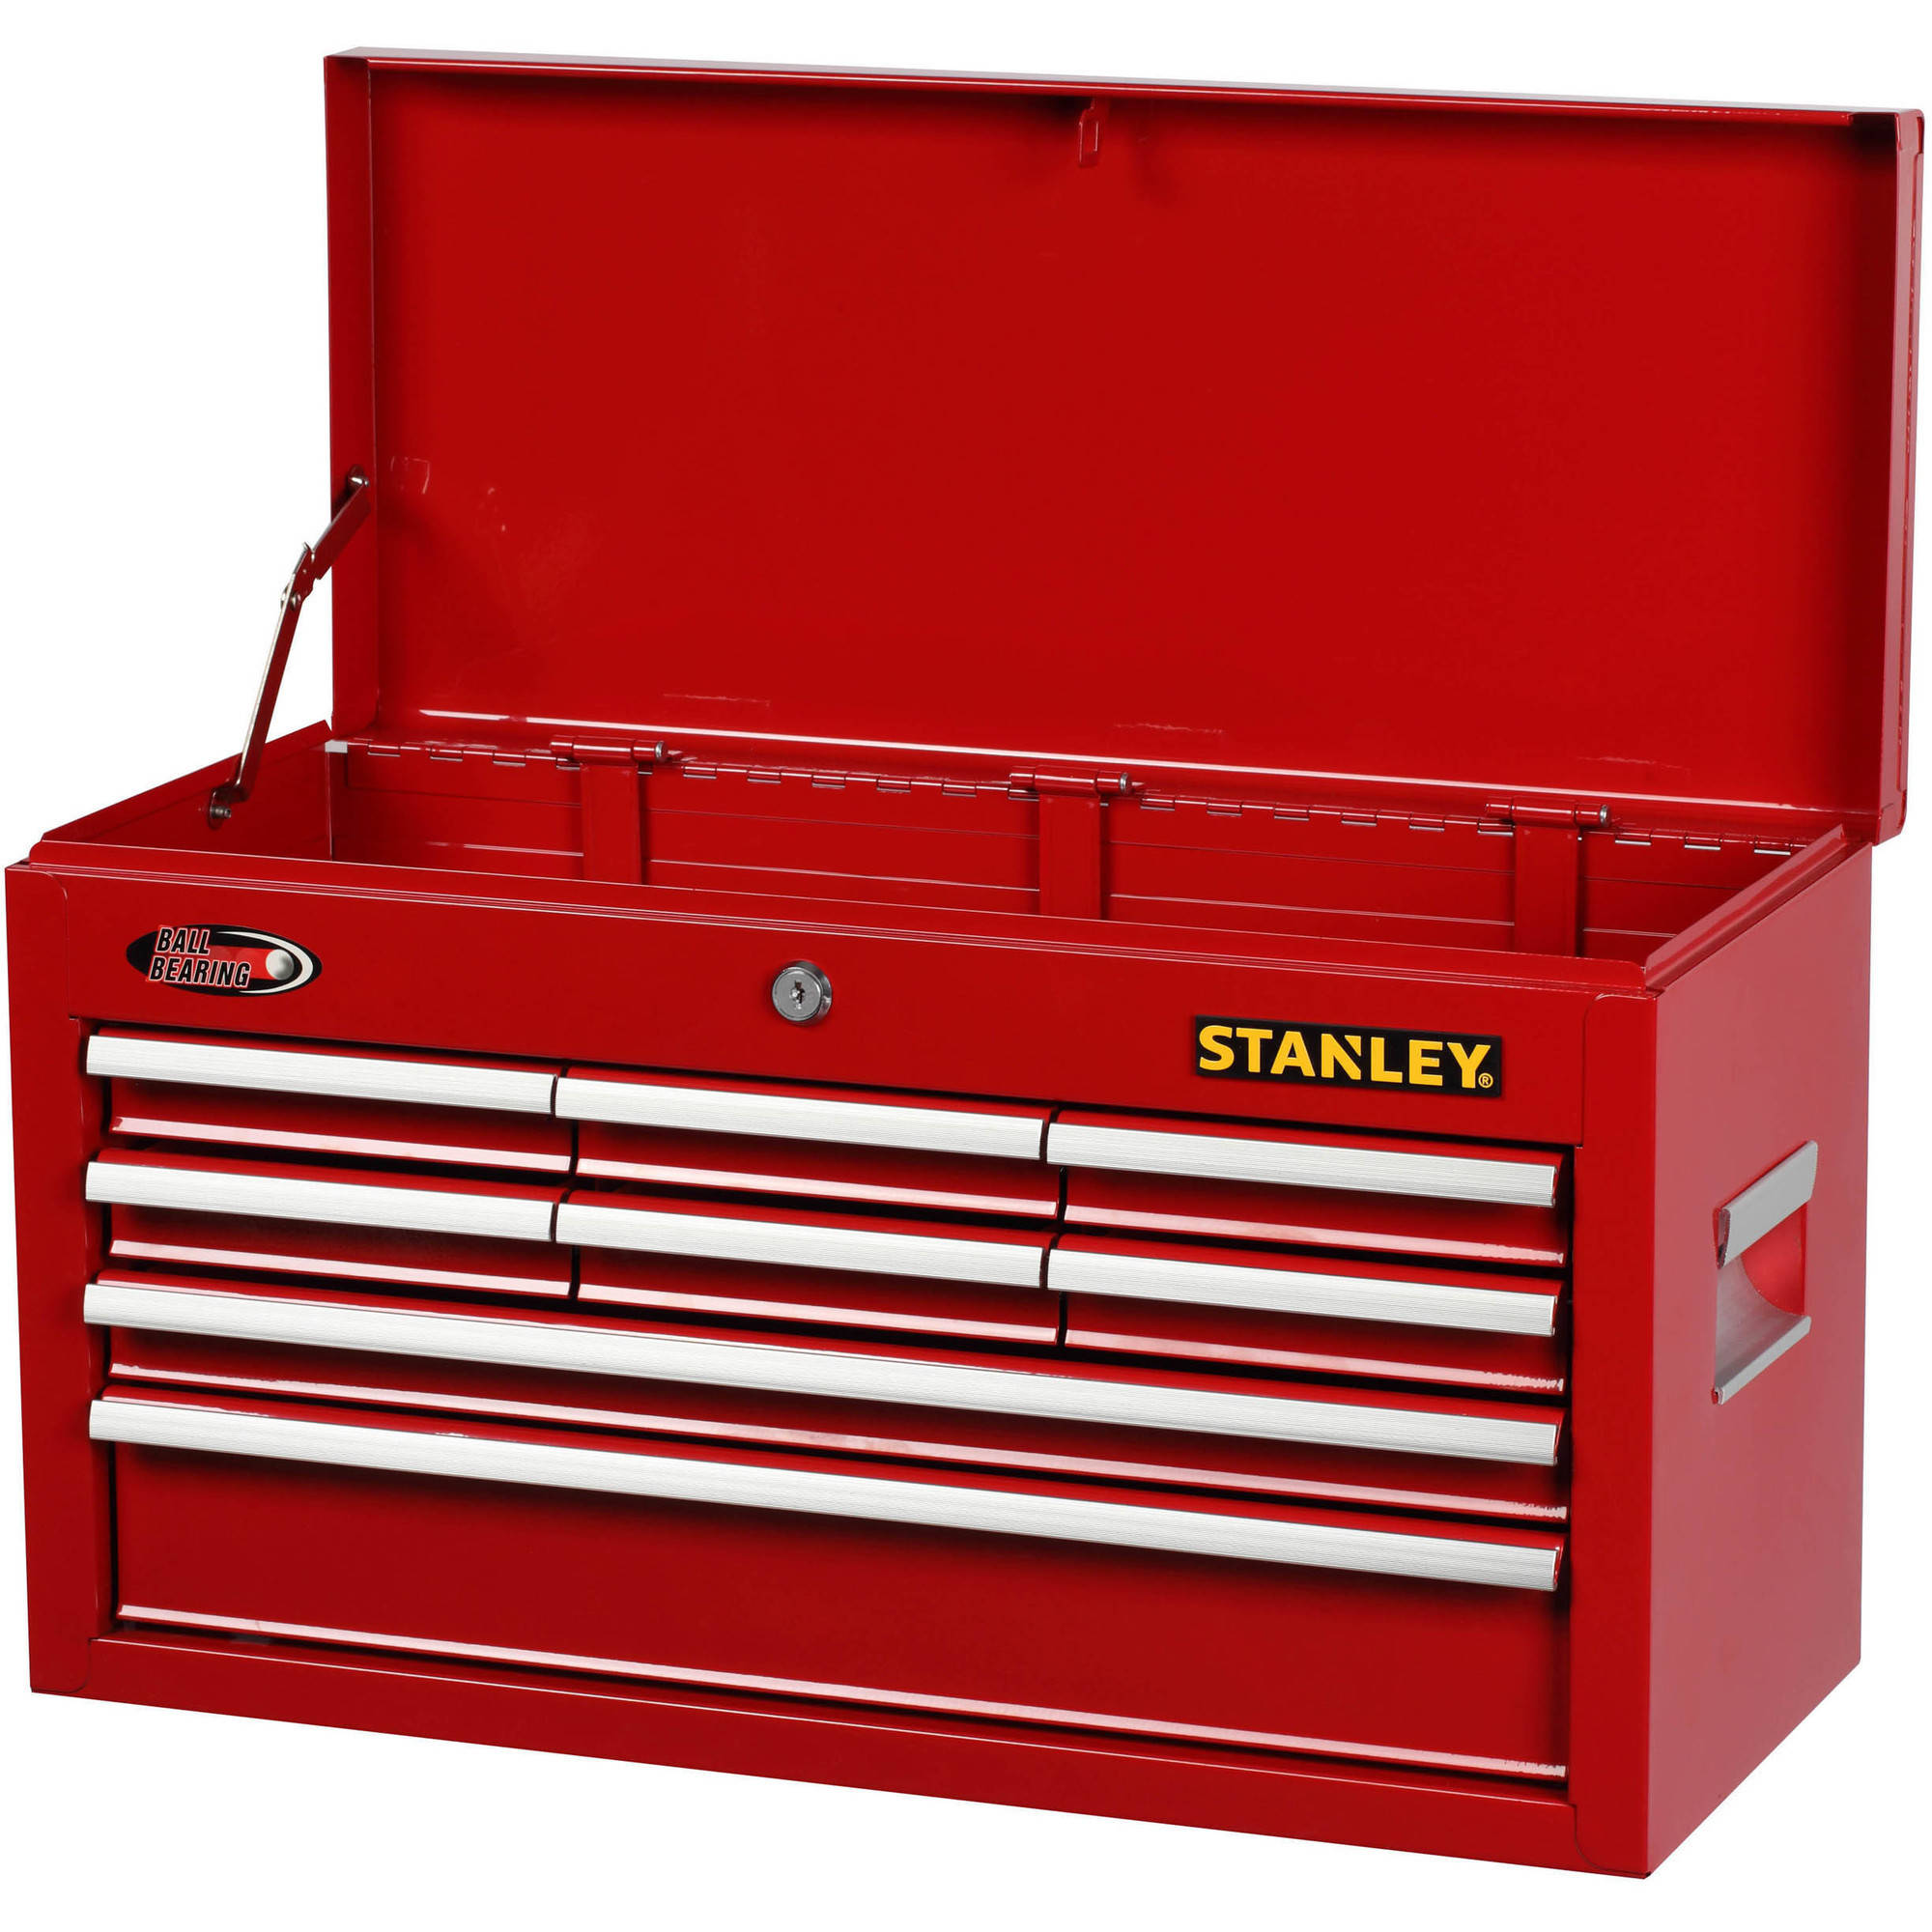 Stanley 8-Drawer Chest, Red